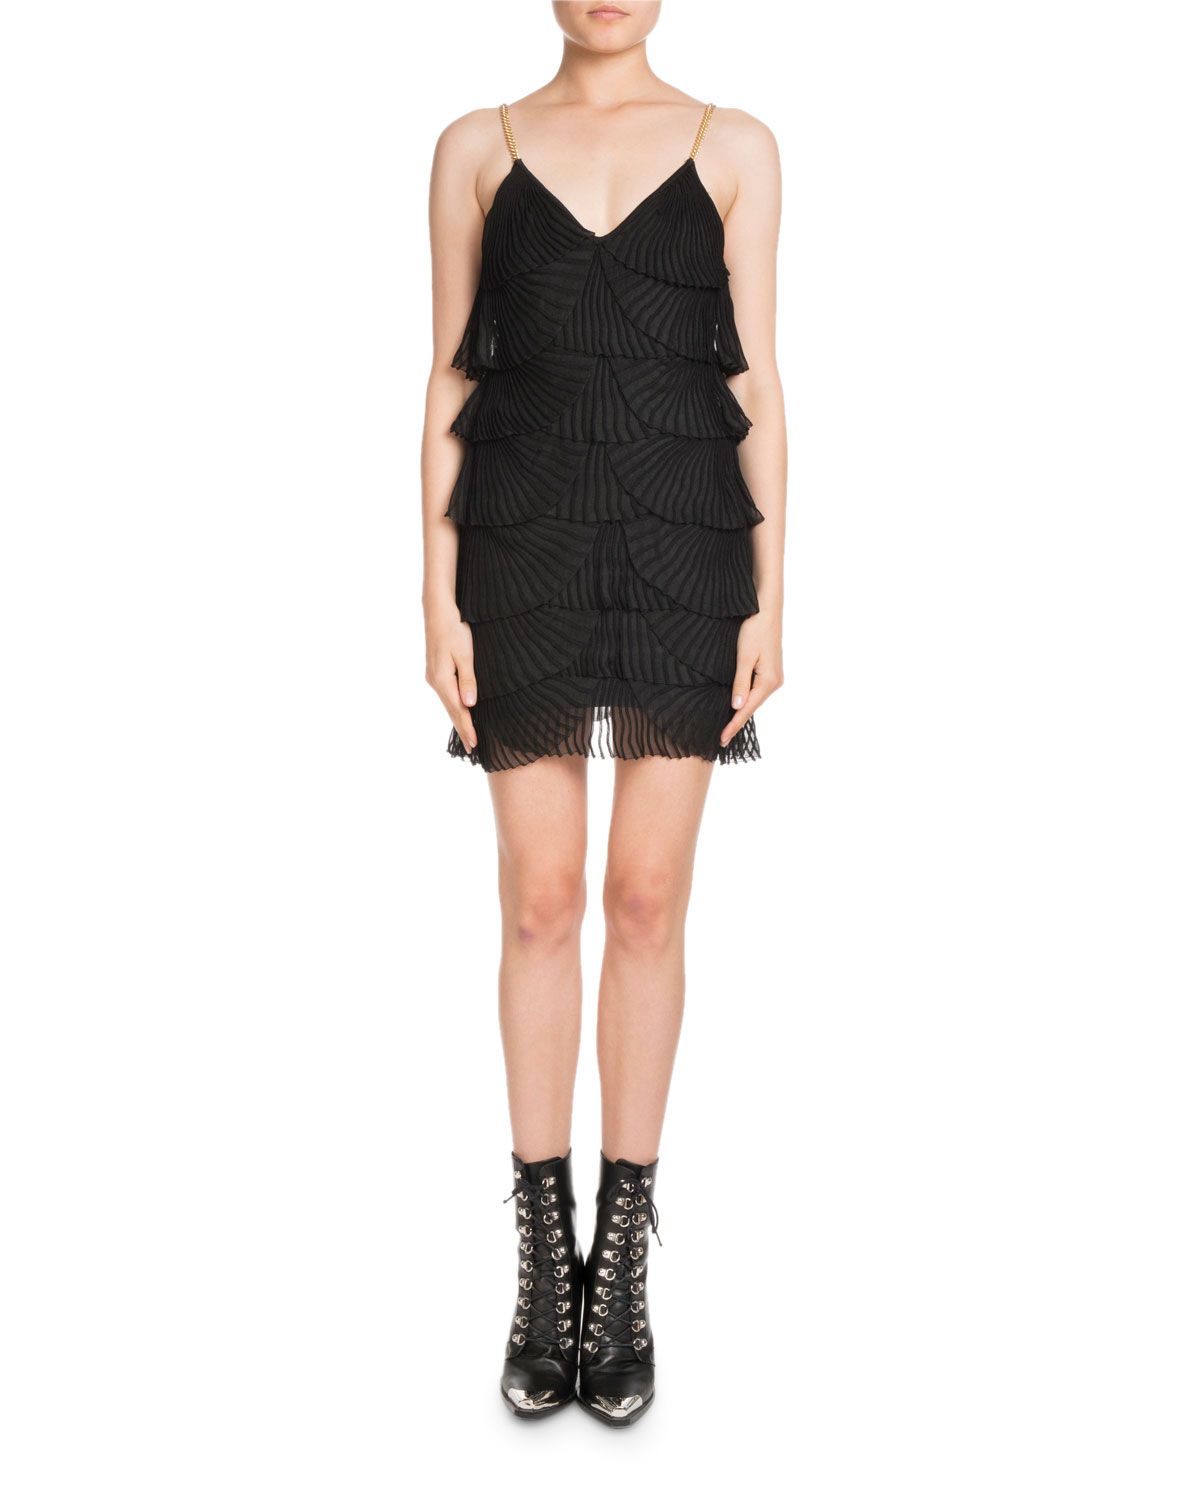 1214d1f6 Buy balmain dresses for women - Best women's balmain dresses shop ...